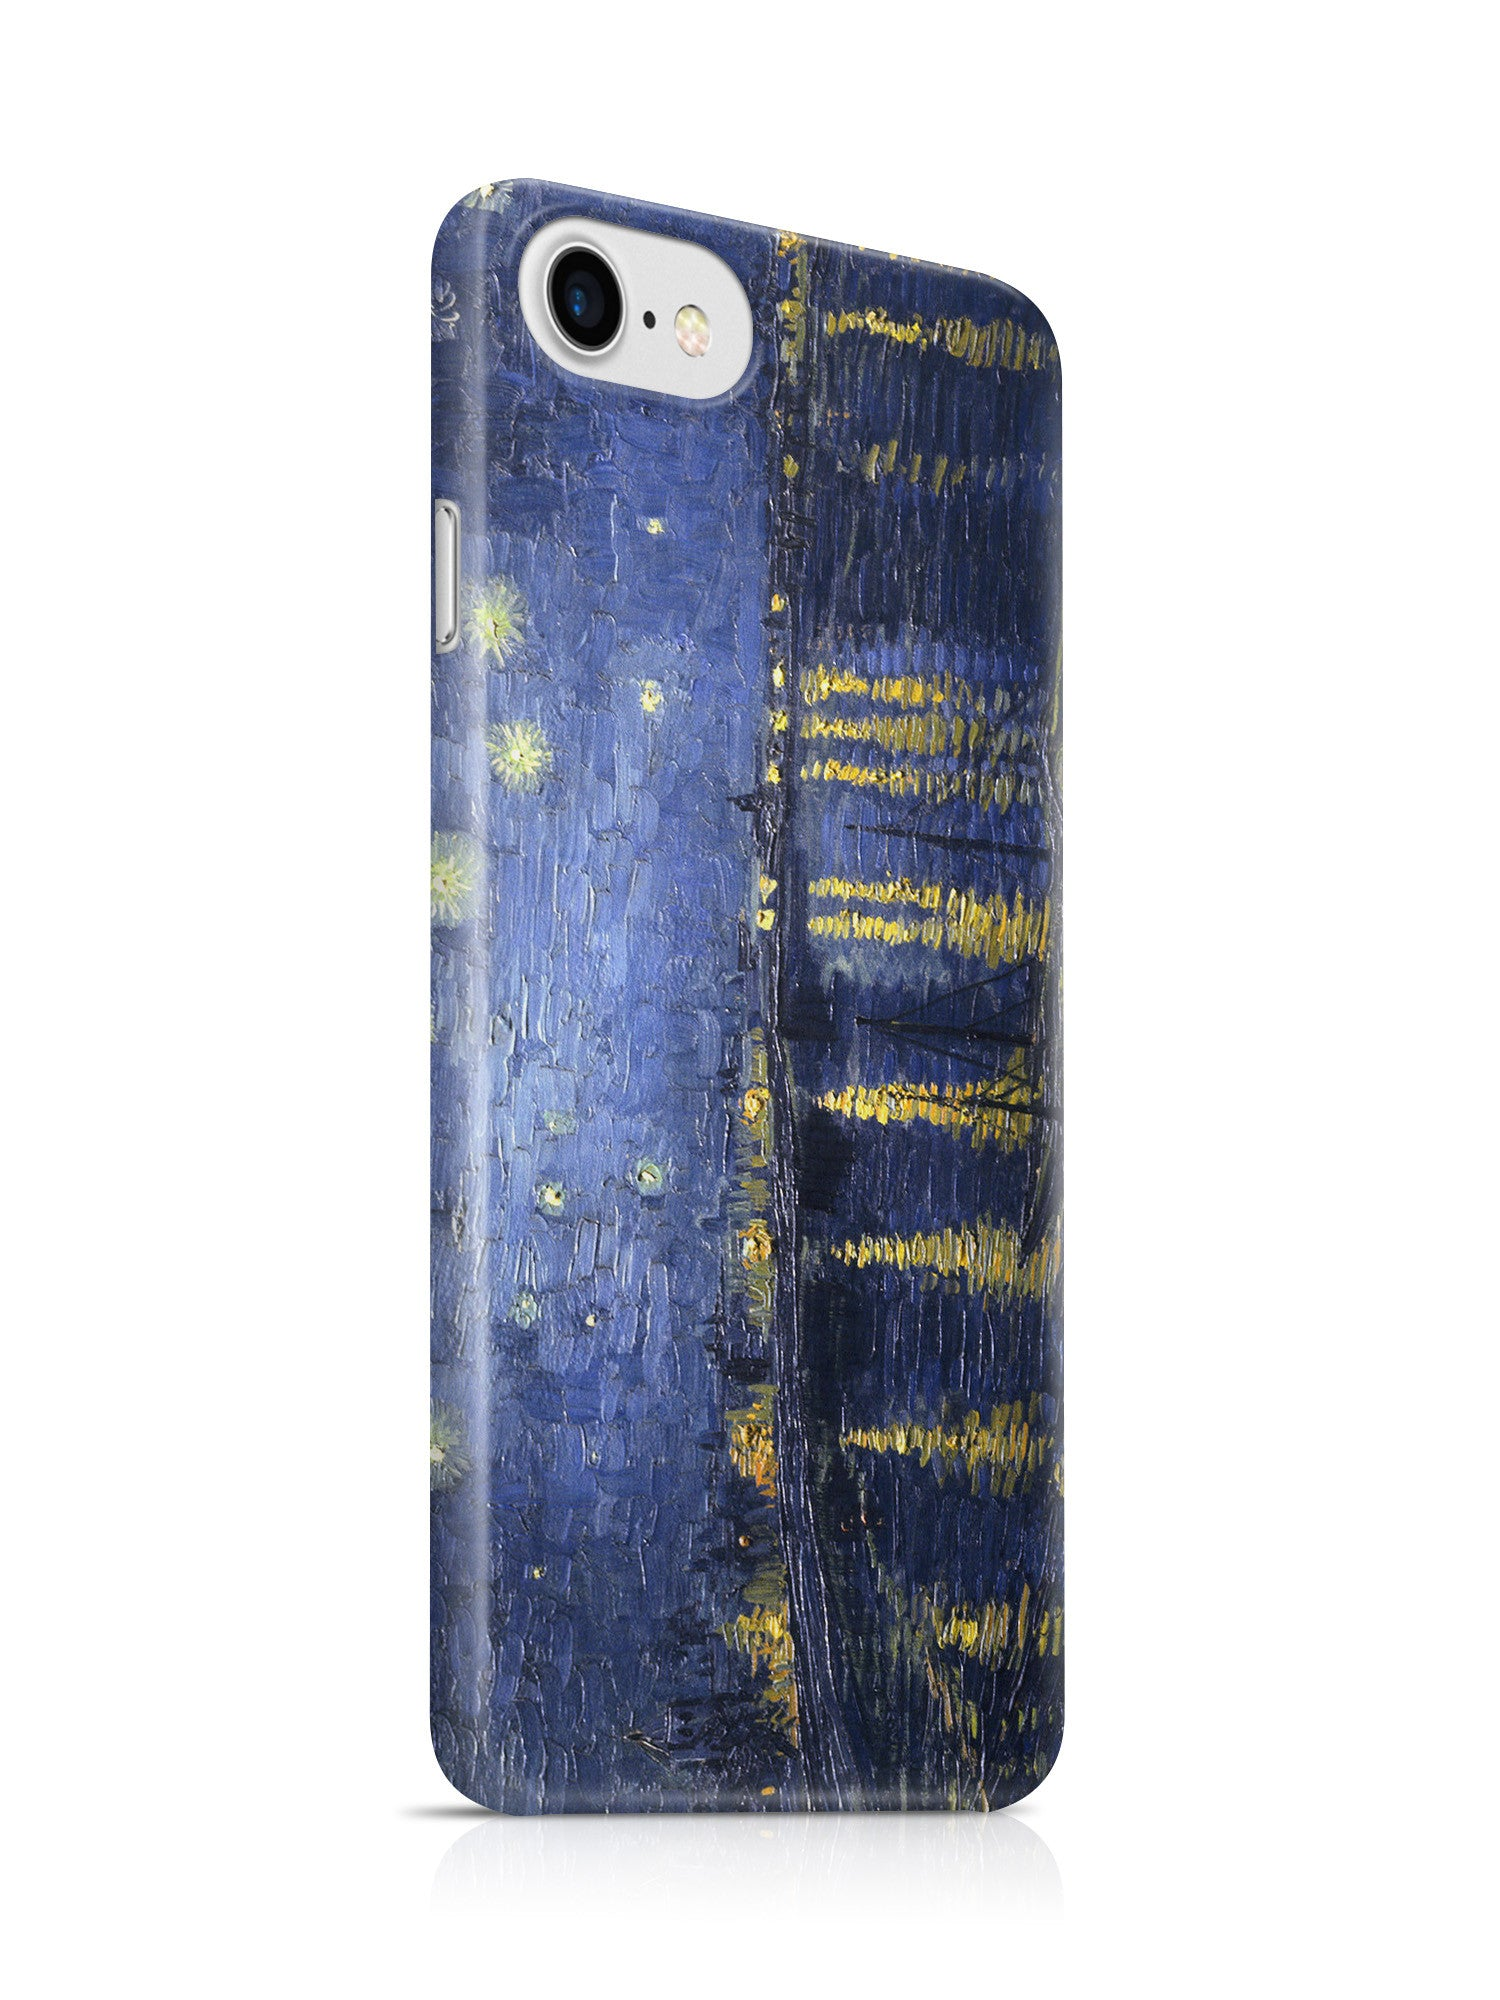 Vinteja Officially Licensed - Starry Night Over the Rhone by Van Gogh - Curated Case Cover For IPHONE 7